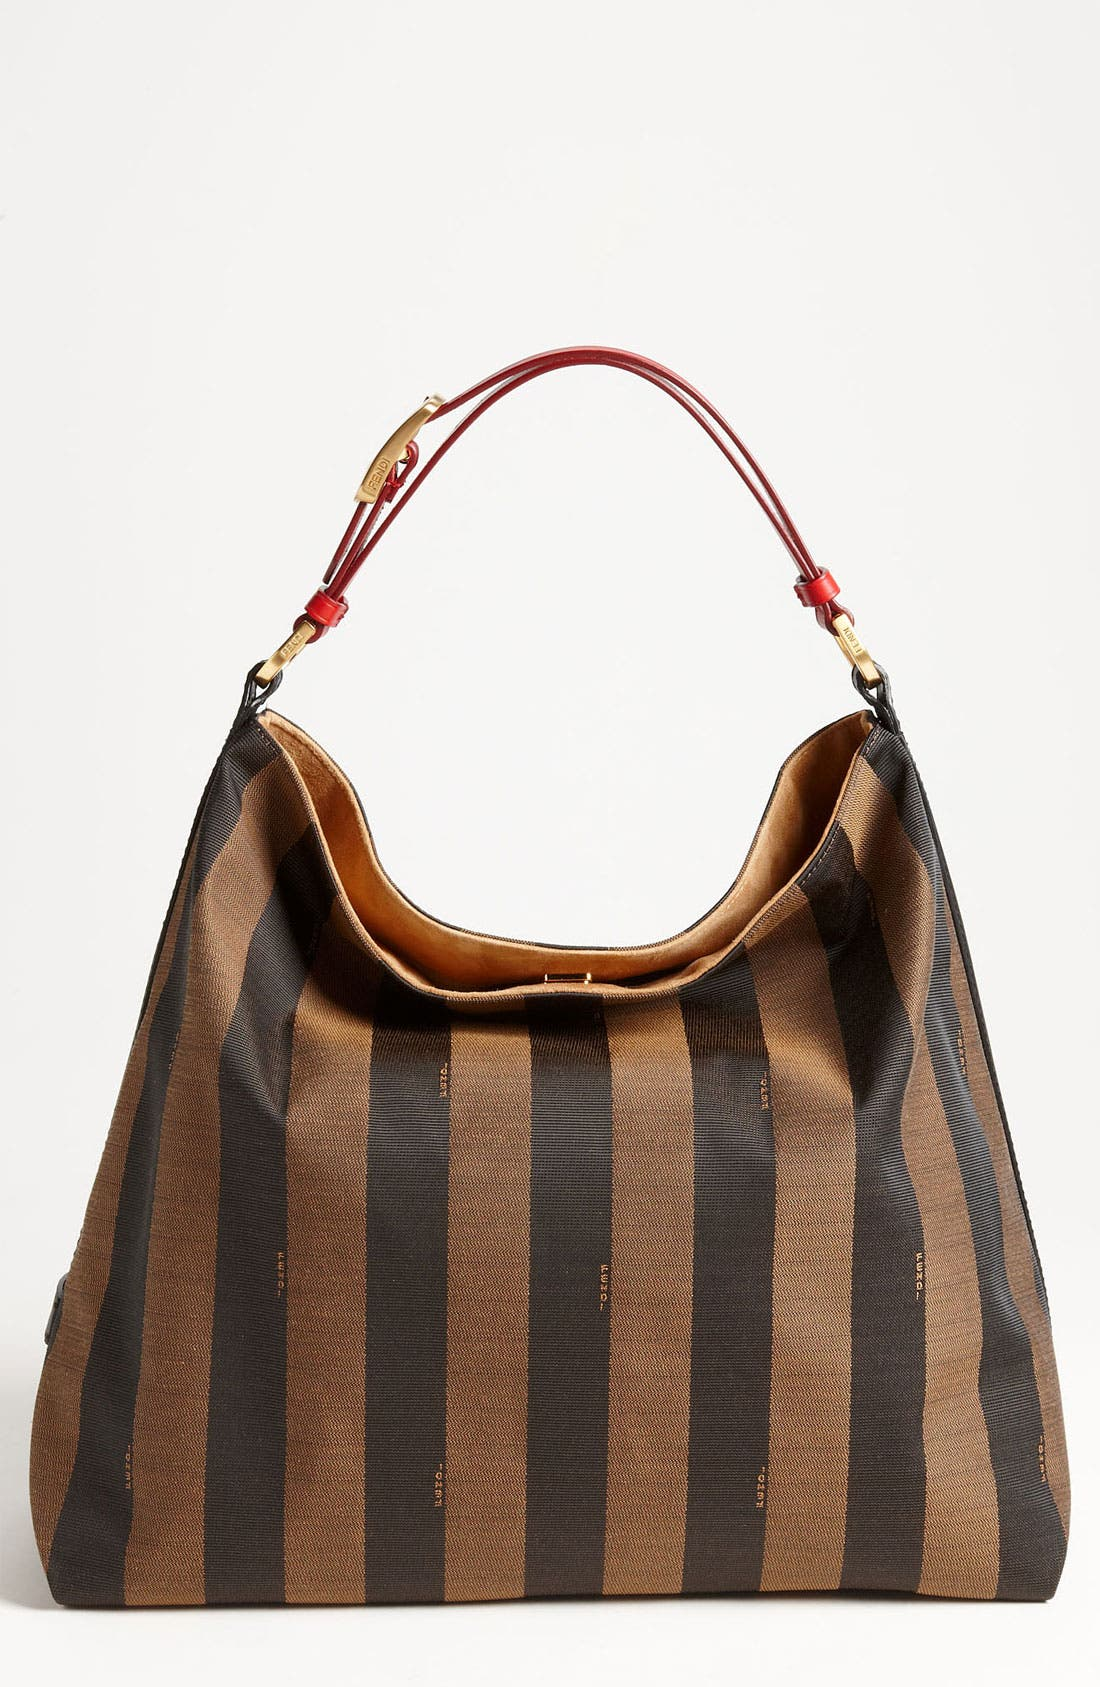 Alternate Image 1 Selected - Fendi 'Pequin' Hobo